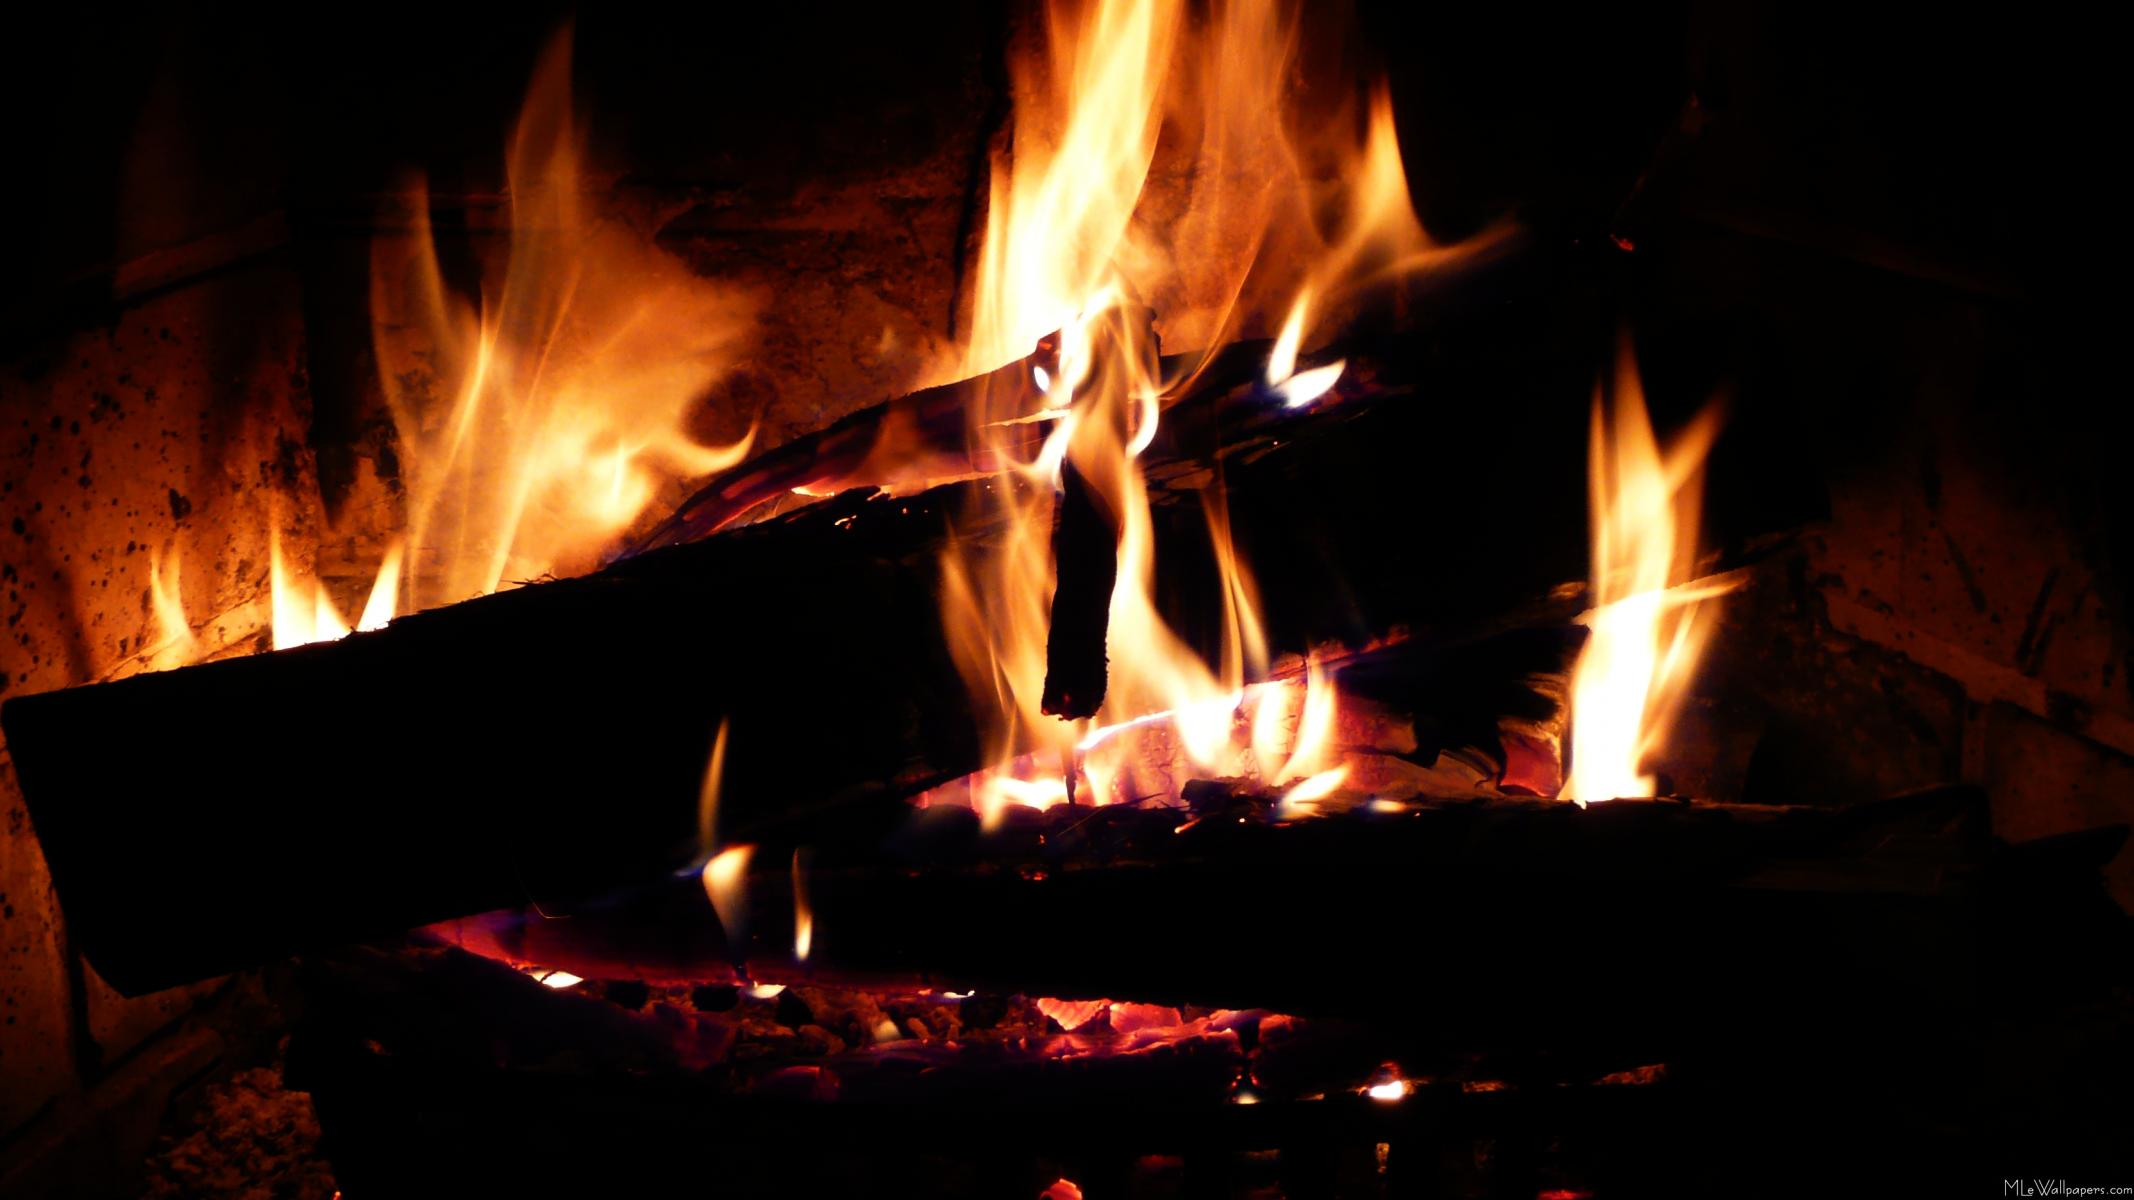 MLeWallpaperscom   Logs in the Fireplace 2134x1200